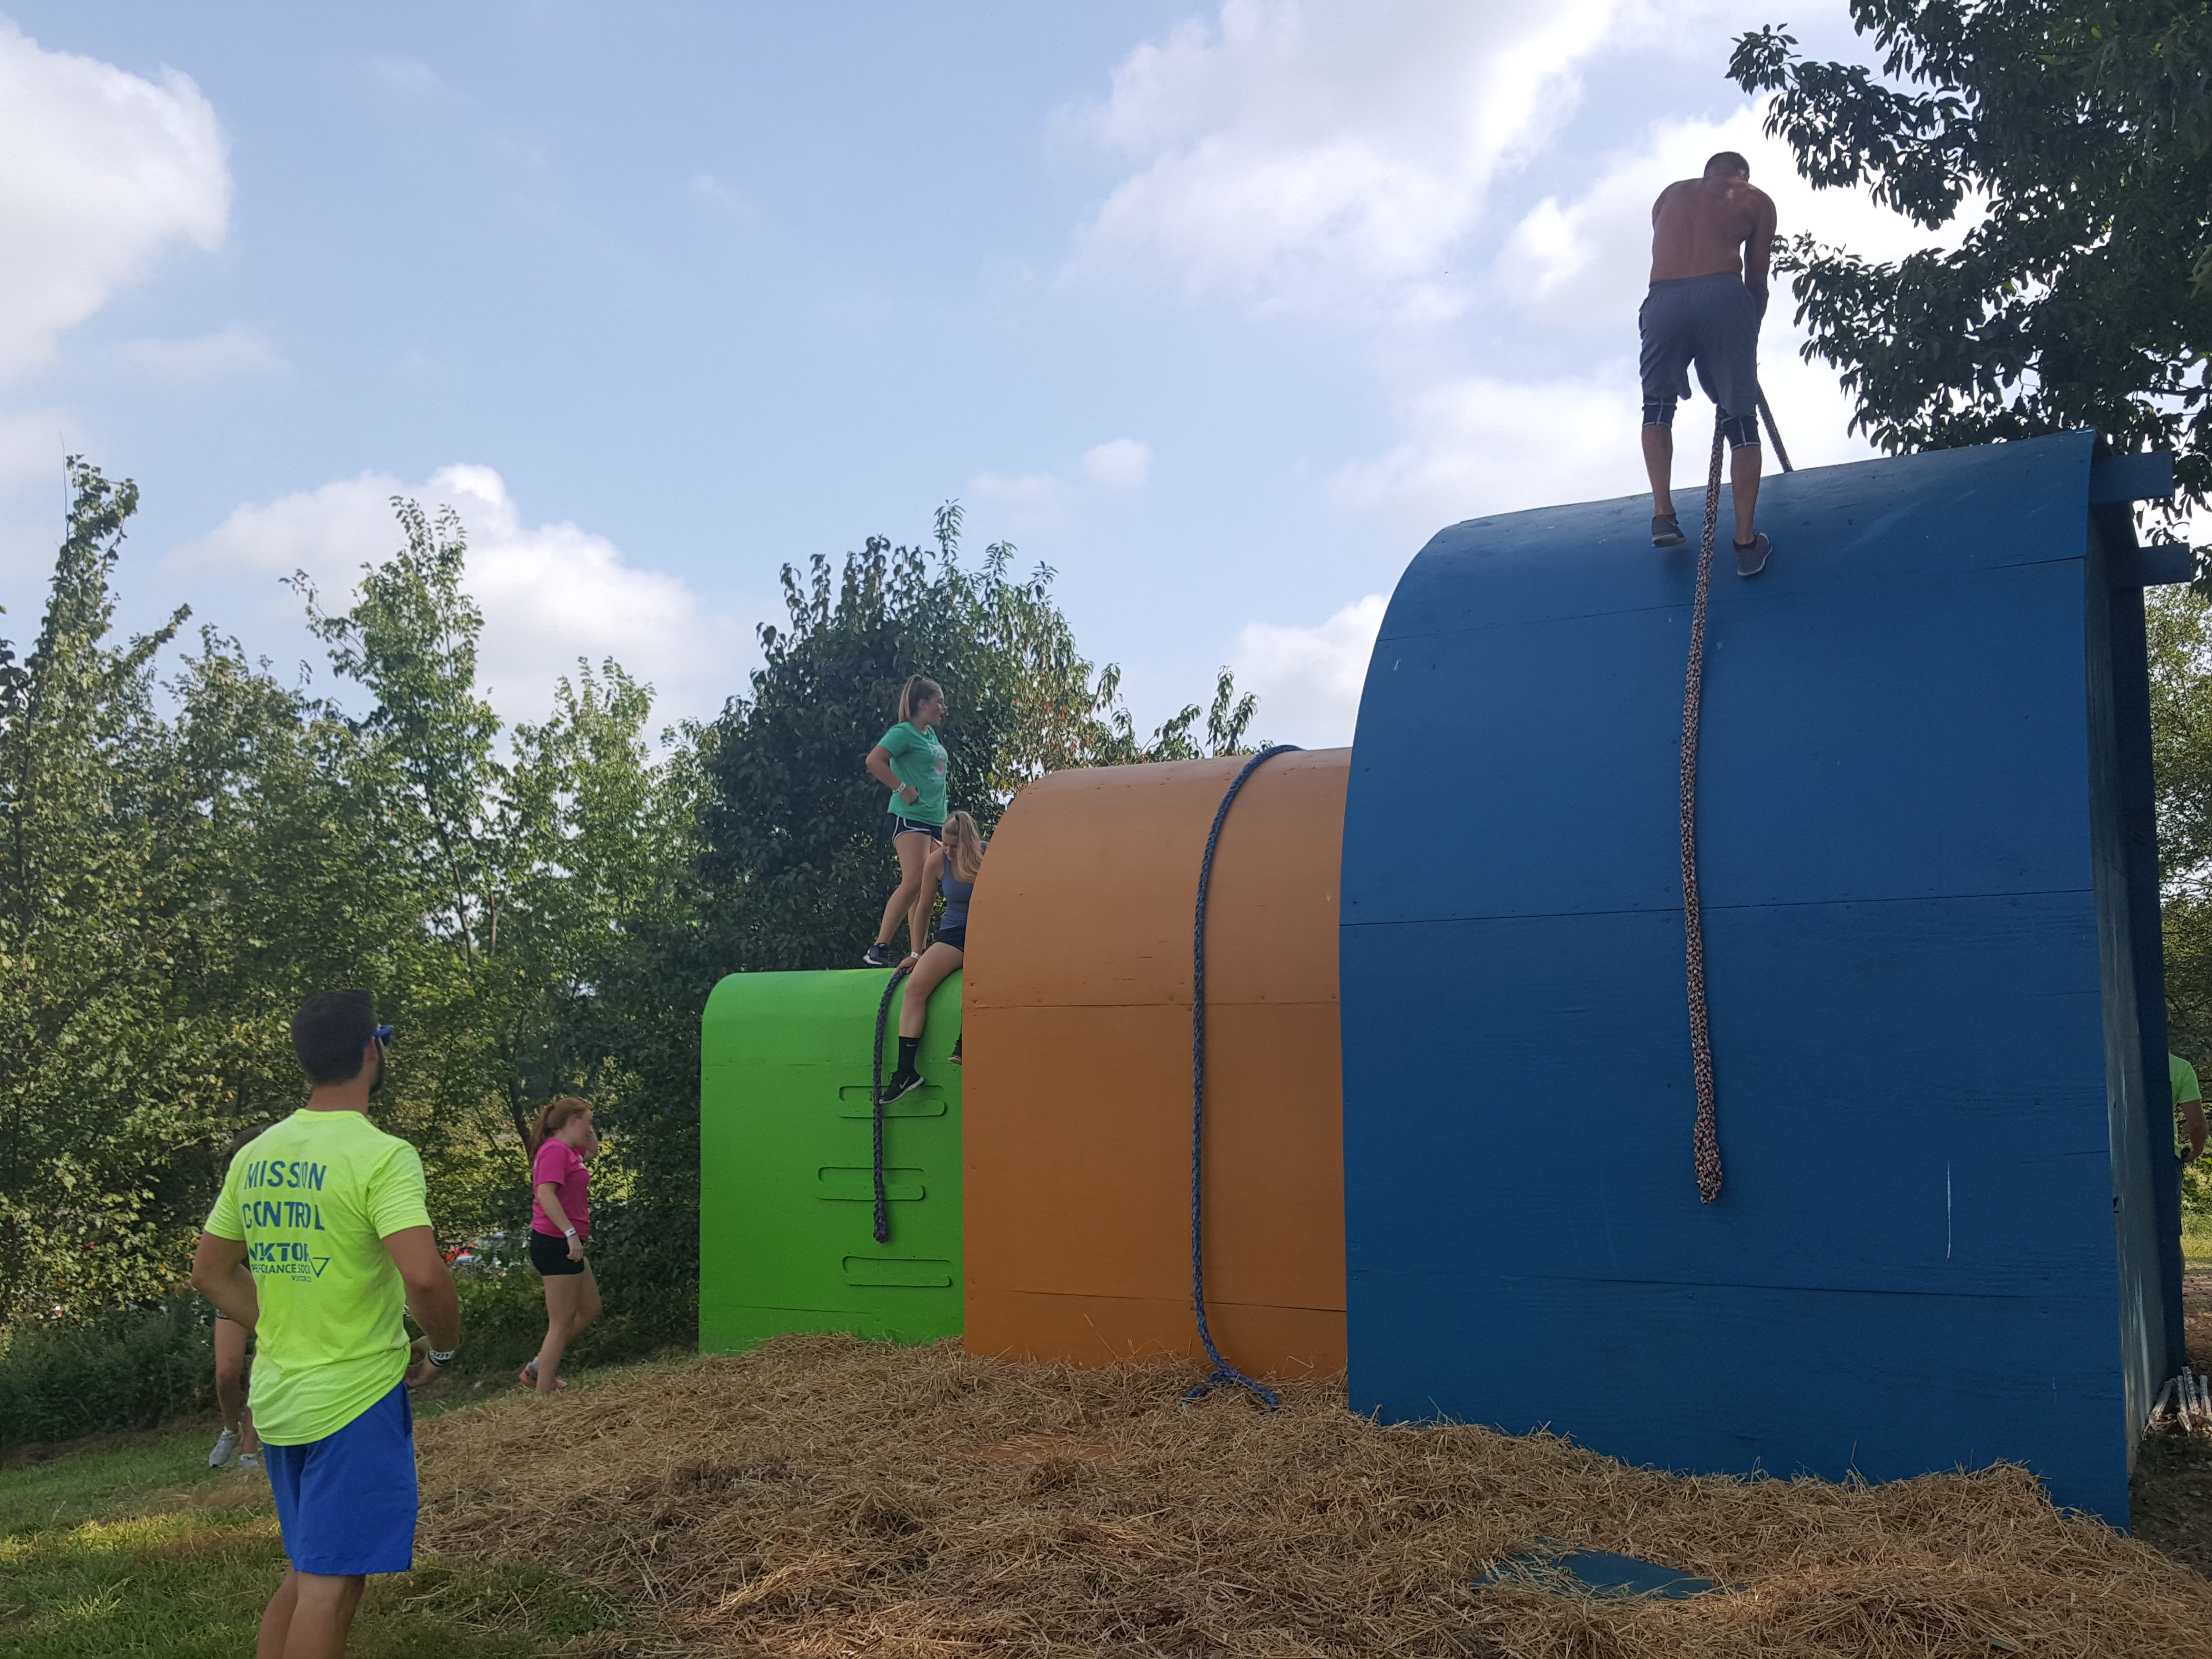 Goliathon Try The Obstacle Day